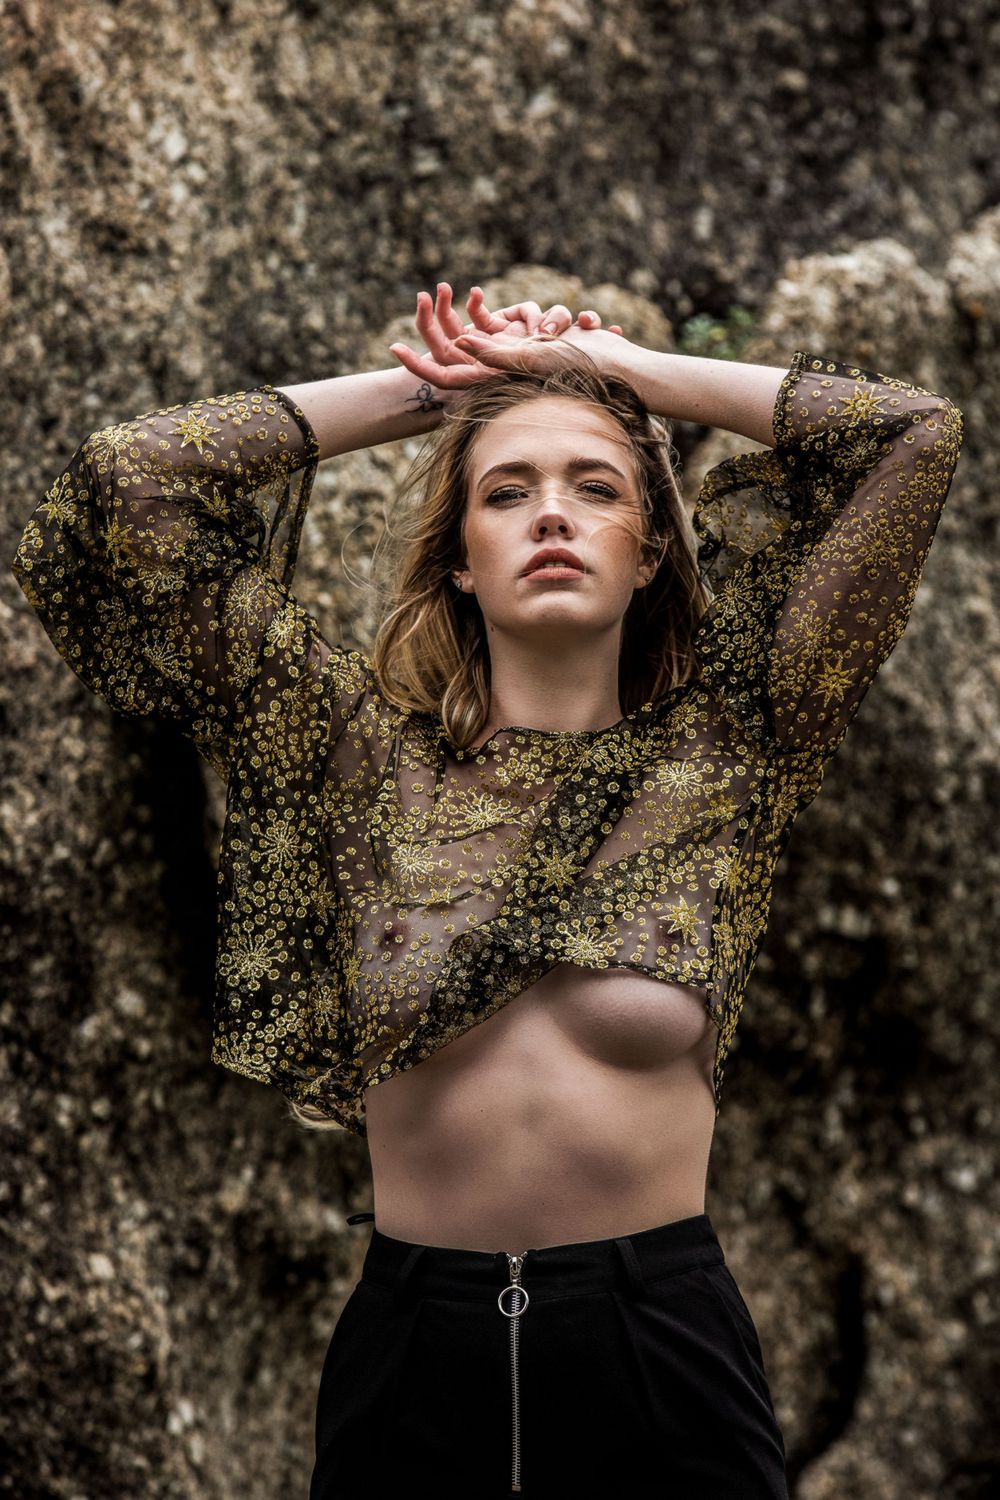 Bronwyn Trafford in a Sheer Top and Topless!